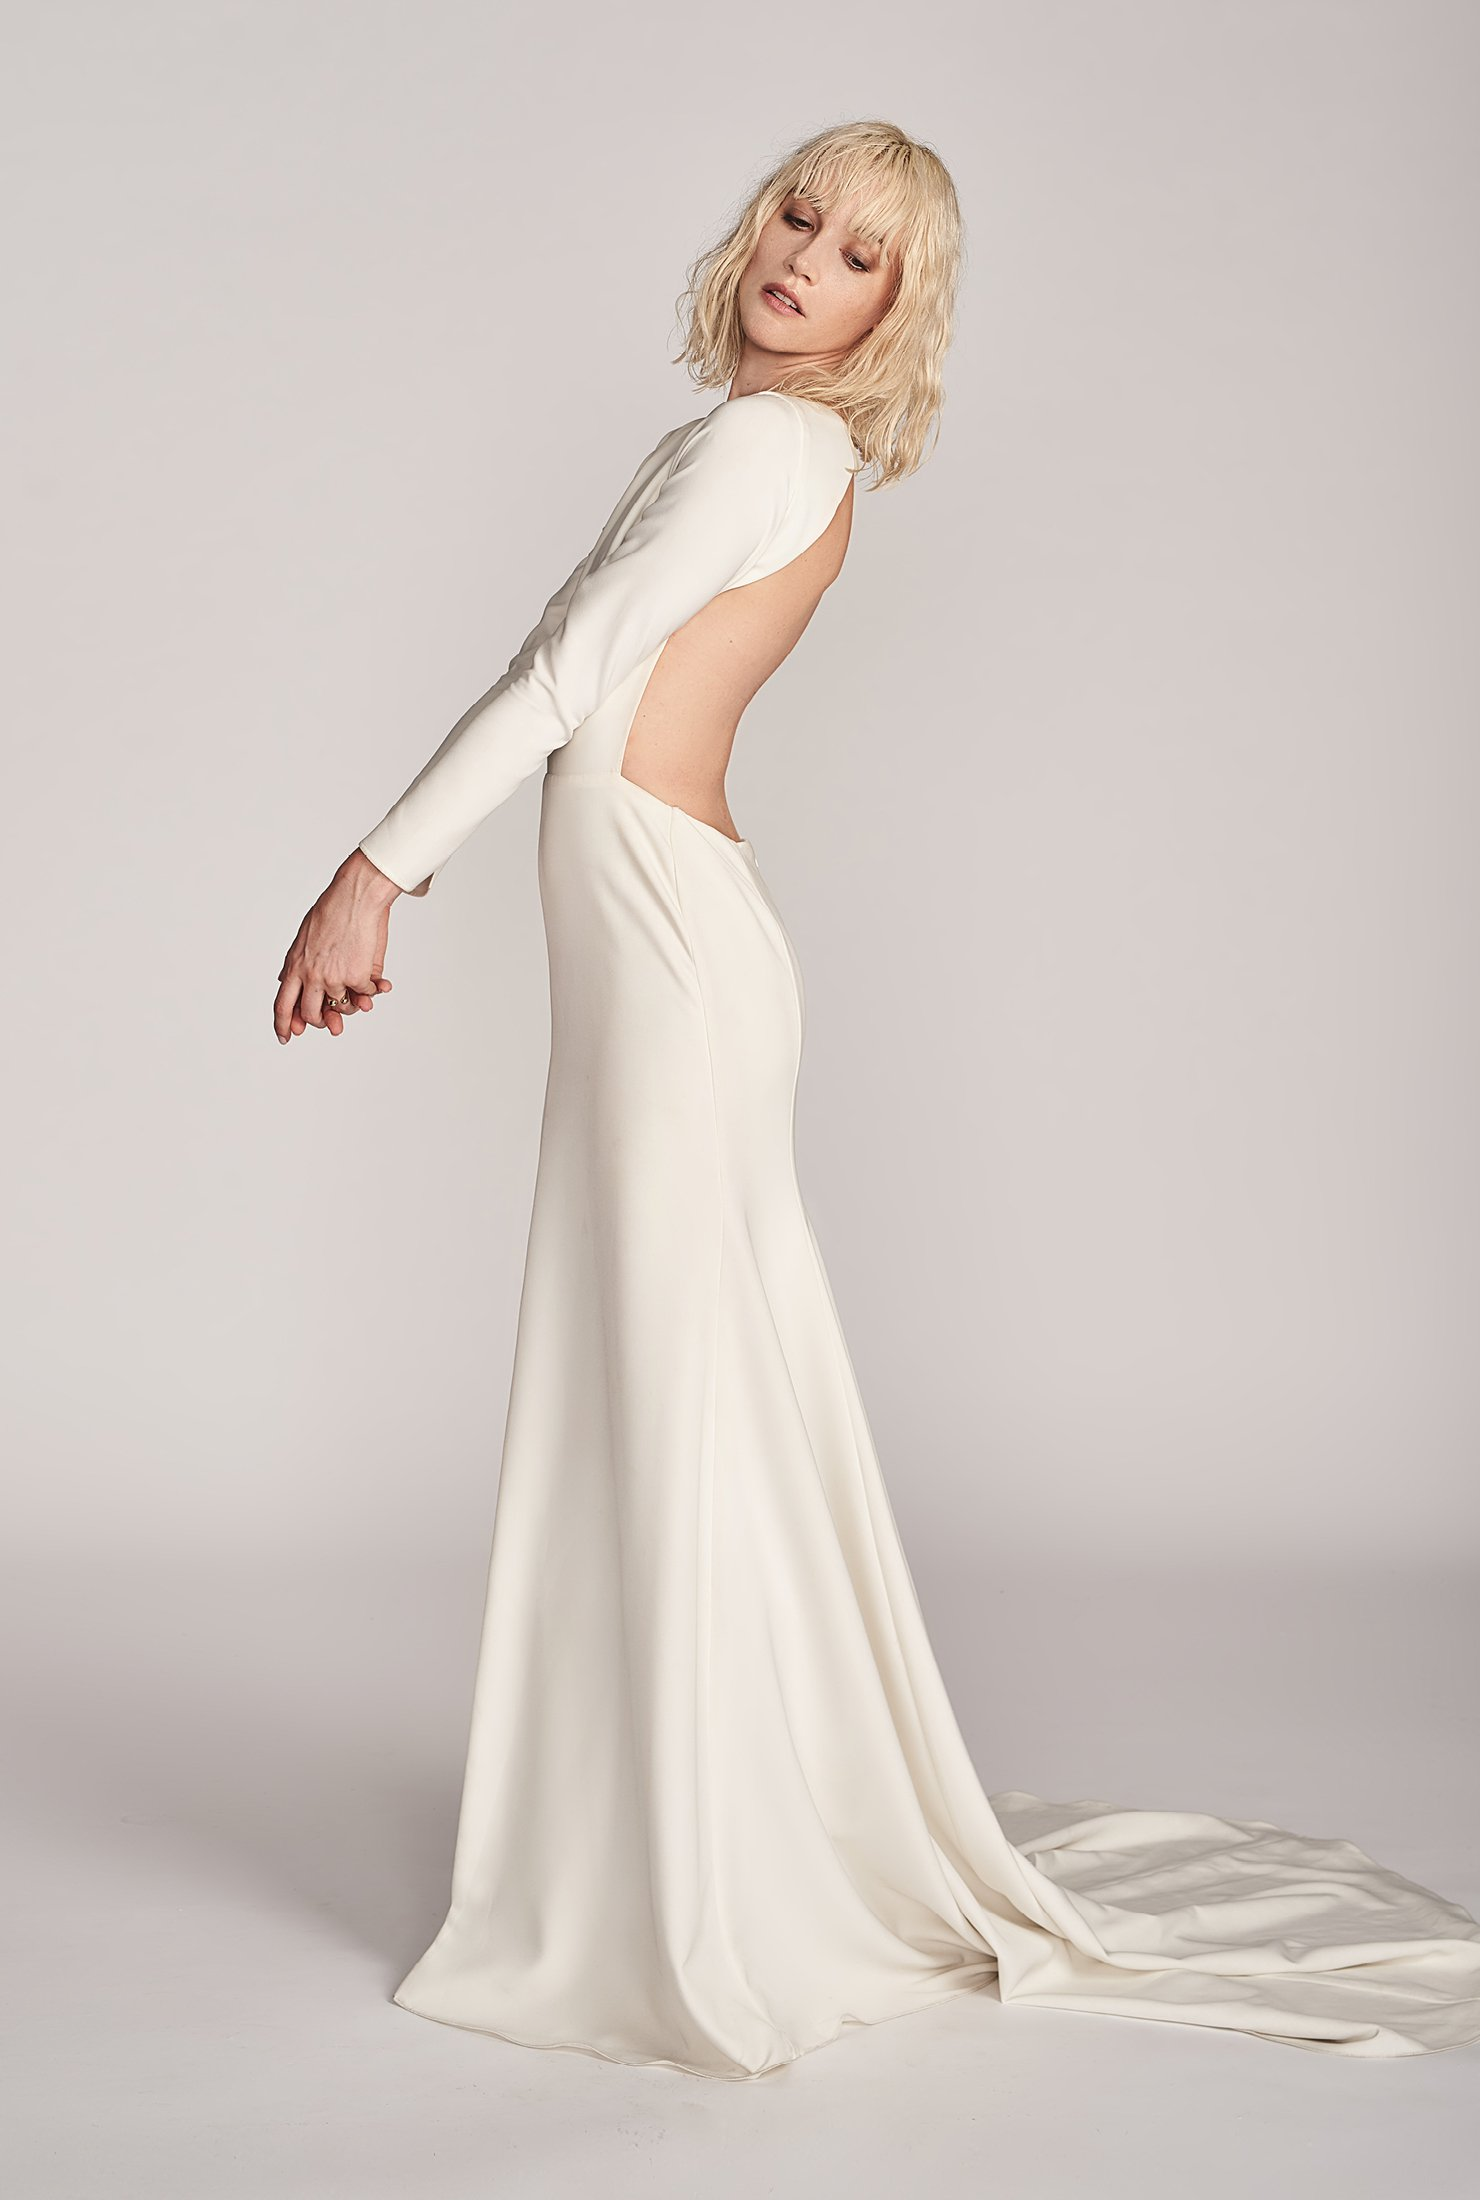 Sarah Seven Sunsets Forever Gown, $4200,   The Bridal Atelier  . Open Ring, from $30,   & Other Stories  .